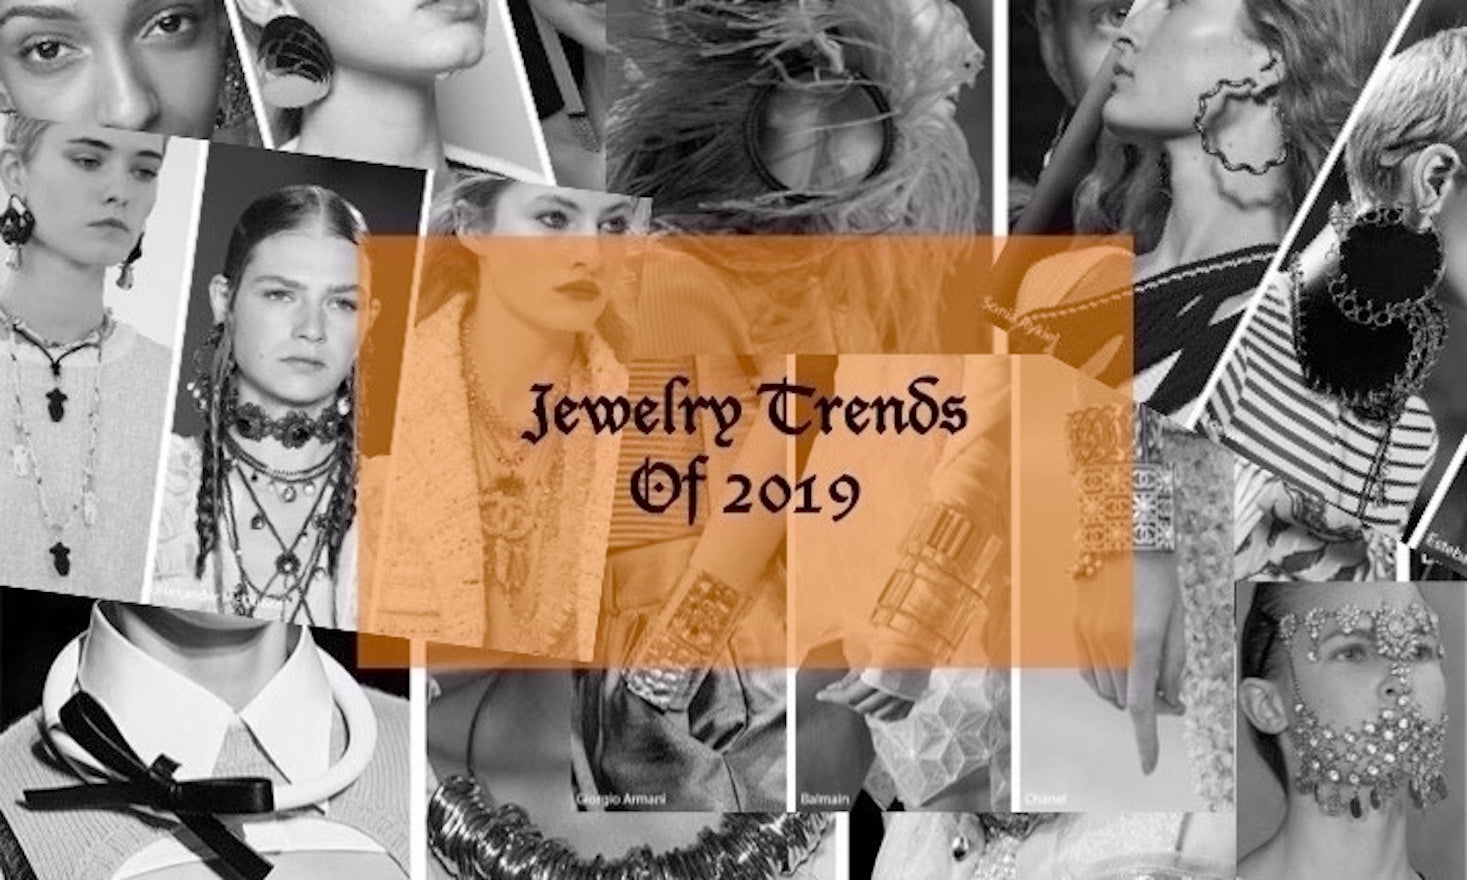 10 Jewelry Trends of 2019 and How to Wear Them